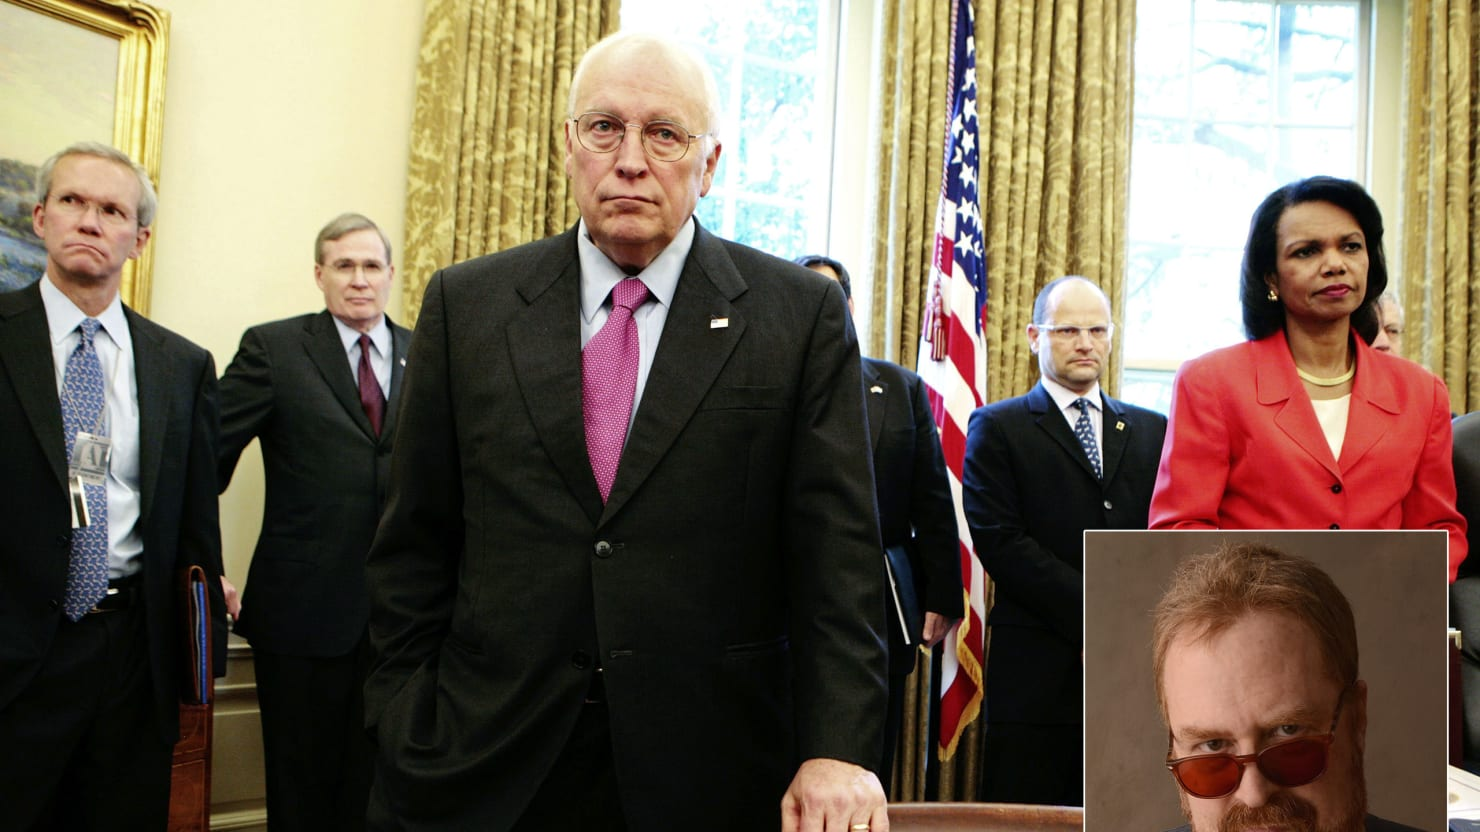 Dick cheney va tech